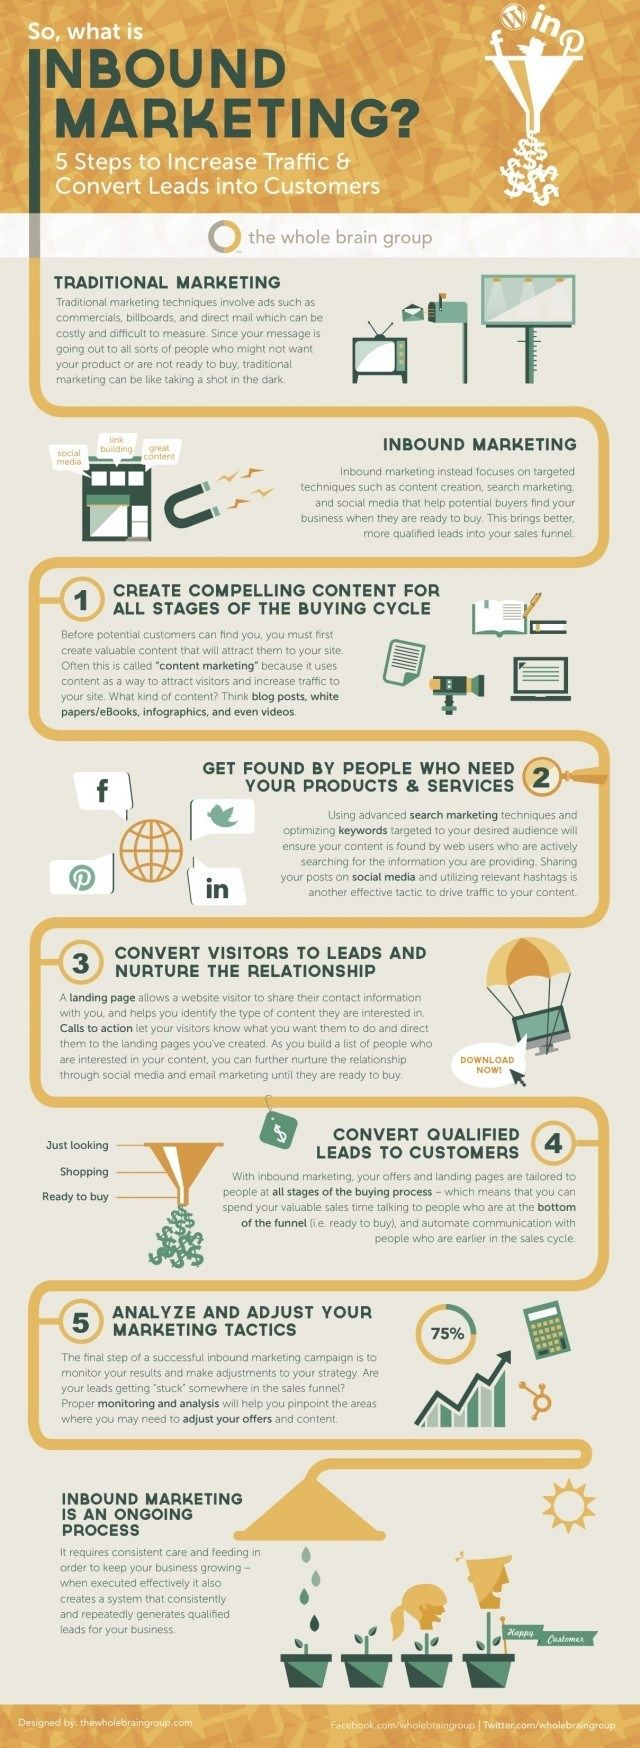 The 5 Steps of Inbound Marketing [INFOGRAPHIC] via http://socialmediatoday.com/digitalsherpa/1631581/infographic-5-steps-inbound-marketing